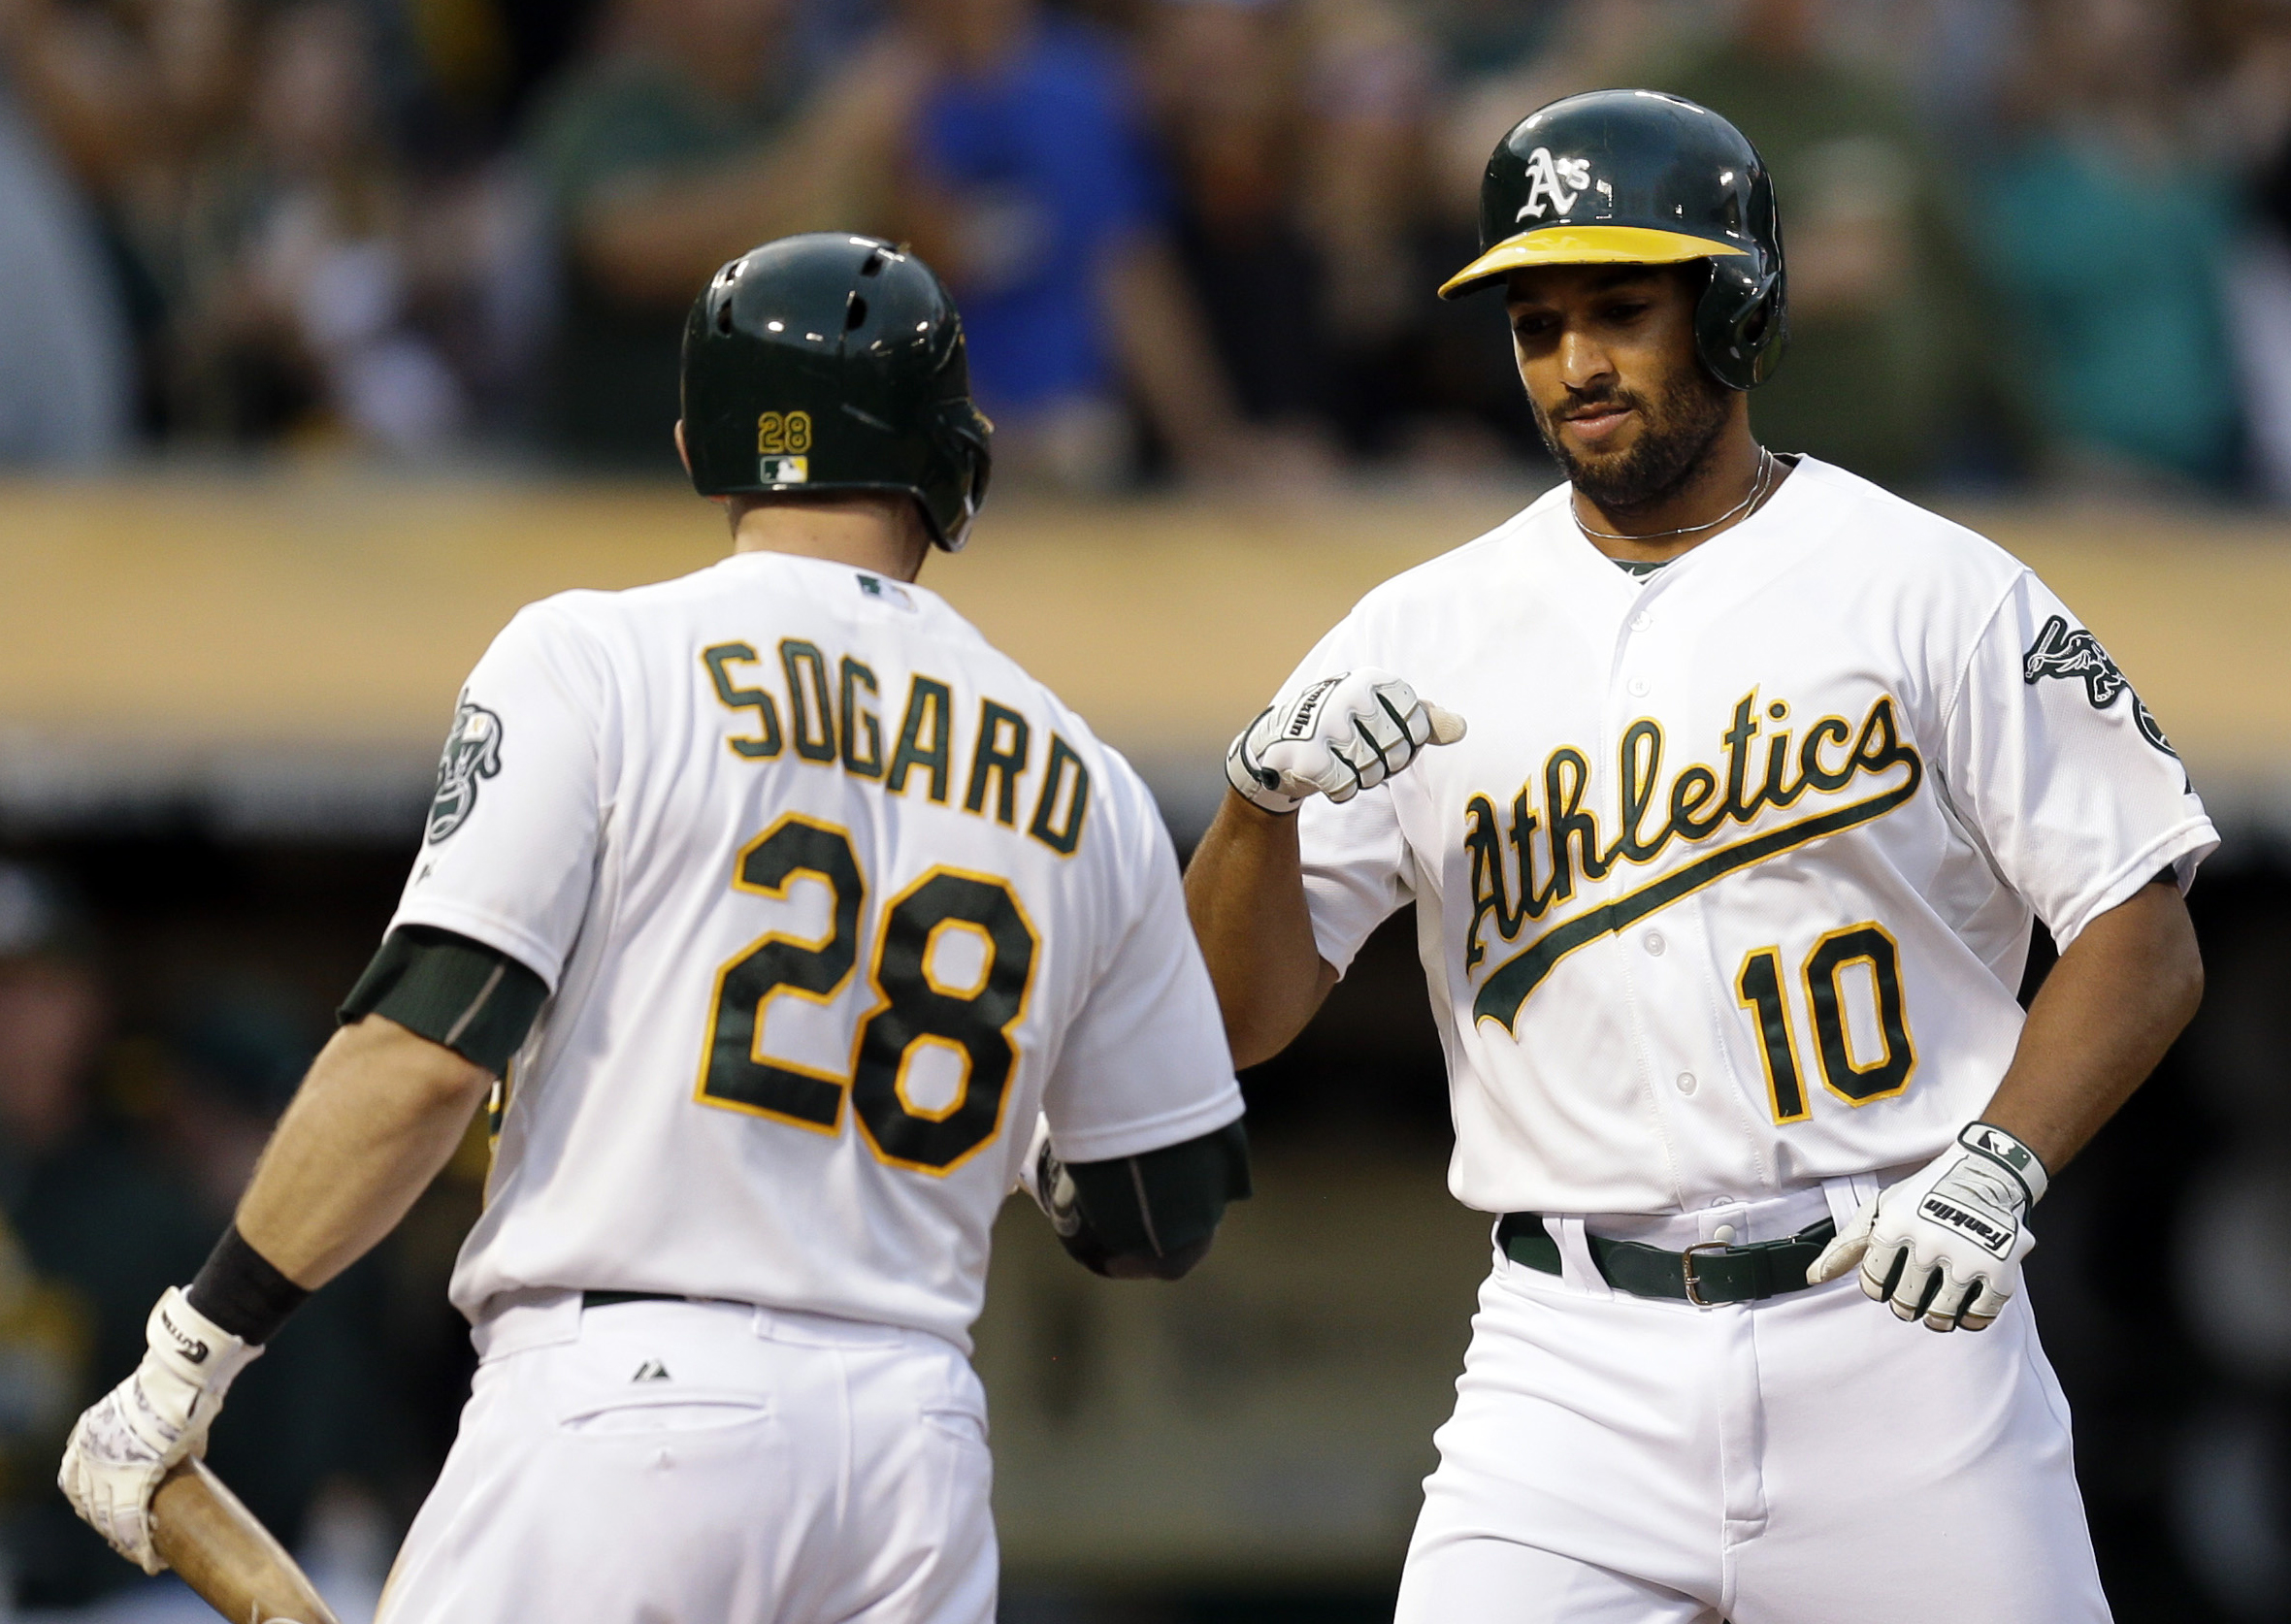 Oakland Athletics' Marcus Semien, right, is congratulated by teammate Eric Sogard (28) after hitting a home run off Cleveland Indians' Cody Anderson in the seventh inning of a baseball game Saturday, Aug. 1, 2015, in Oakland, Calif. (AP Photo/Ben Margot)